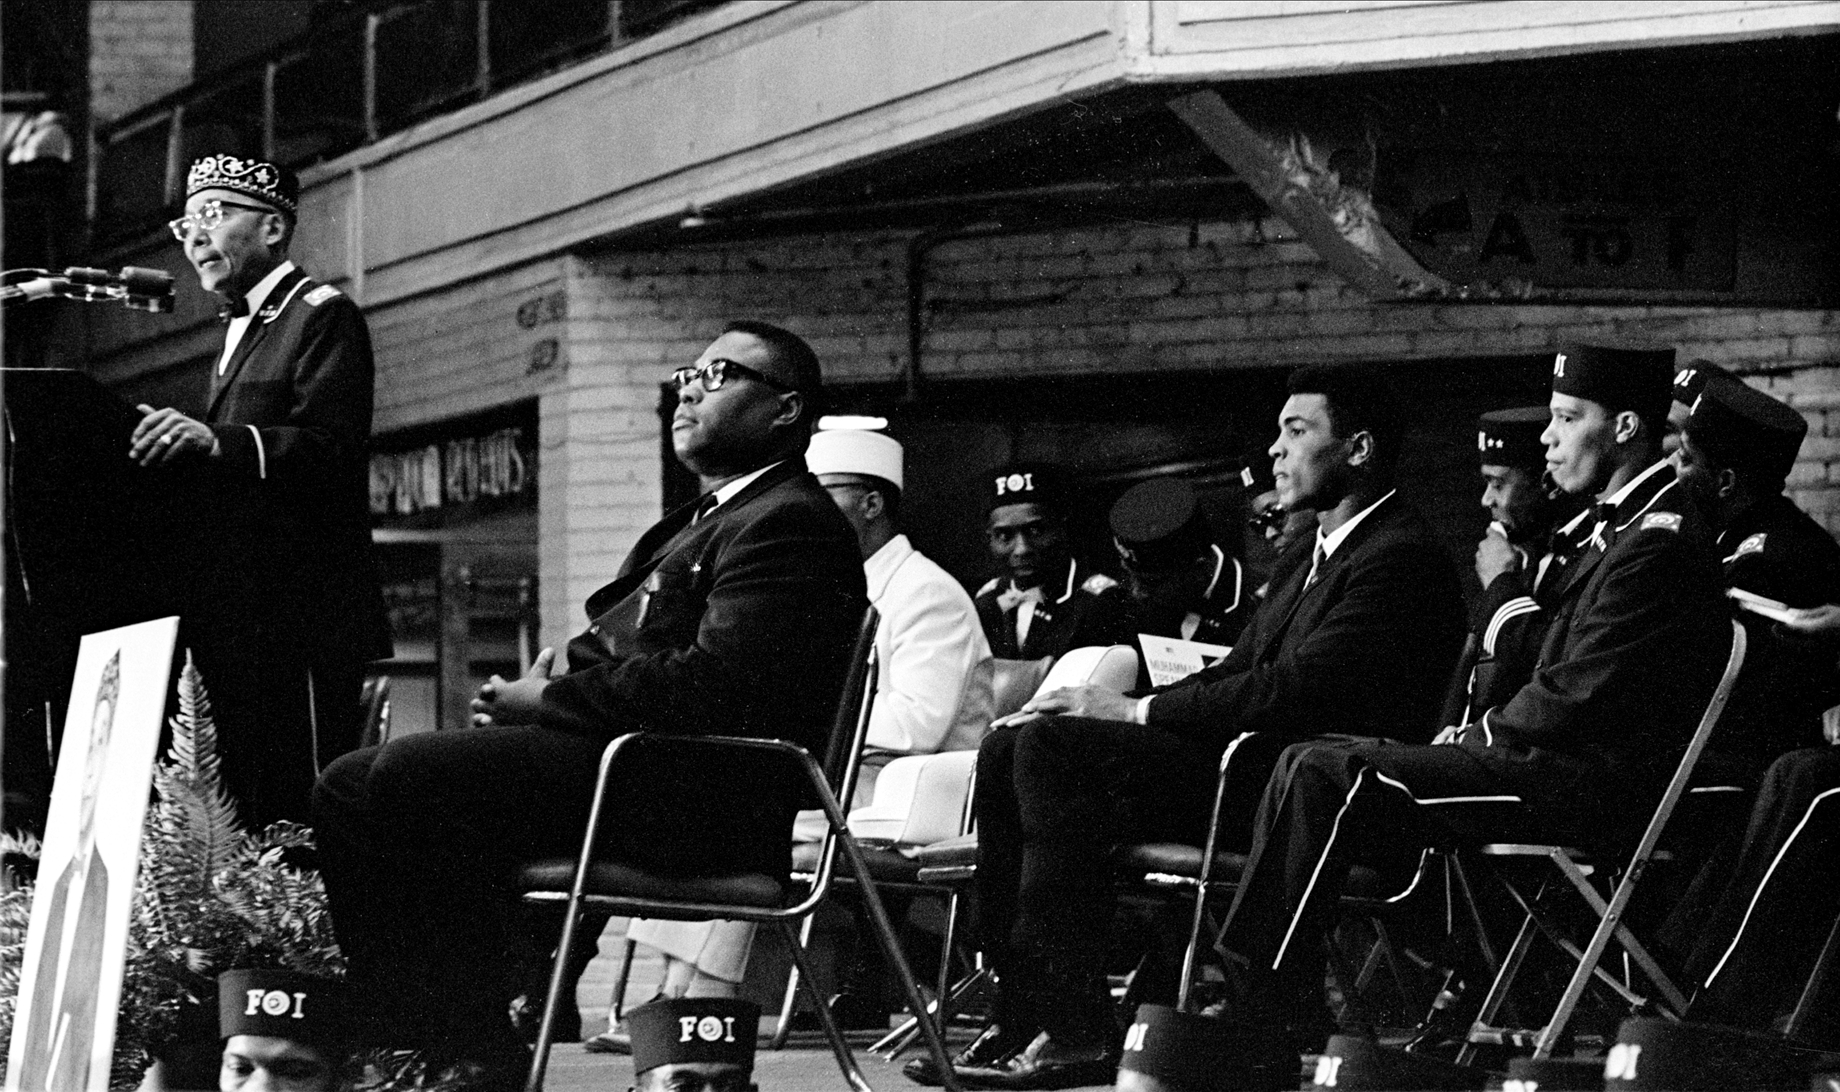 Elijah Muhammad speaks during Saviour's Day celebrations, while Muhammad Ali listens (center, fore), at the International Ampitheatre, Chicago, IL, on Feb. 27, 1966.